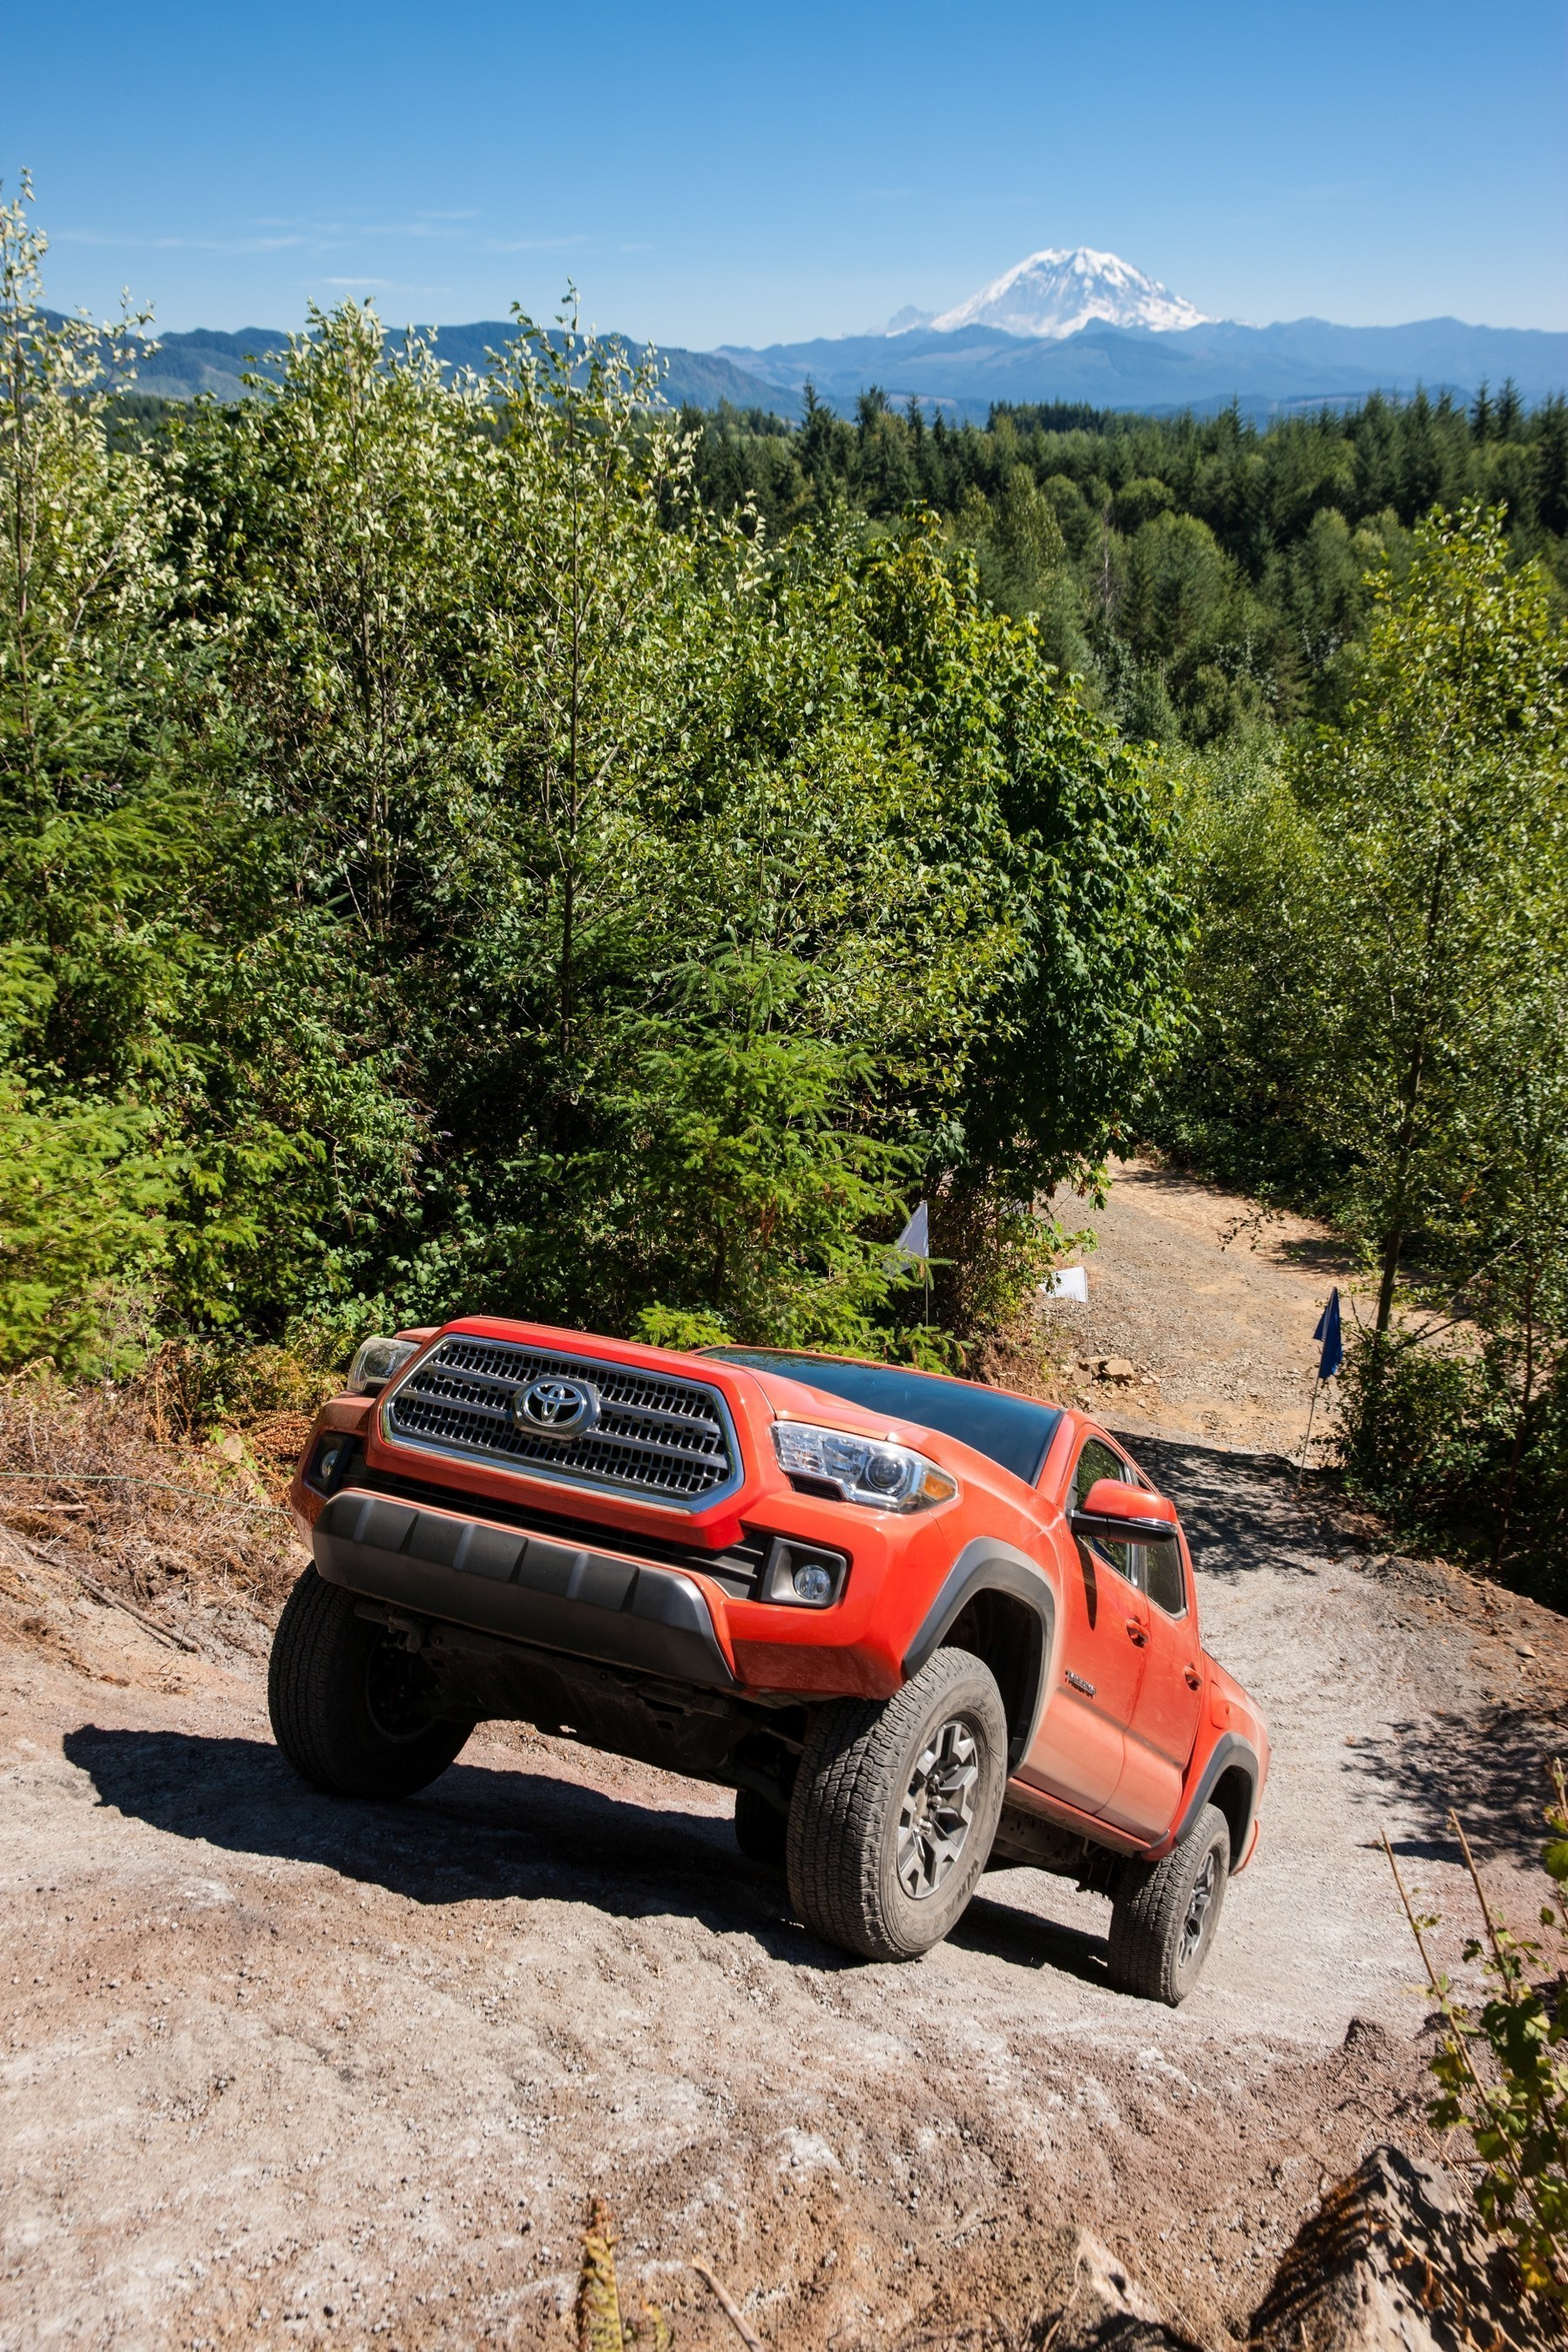 toyota chooses goodyear wrangler tires exclusively for 2016 tacoma trd off road grade. Black Bedroom Furniture Sets. Home Design Ideas